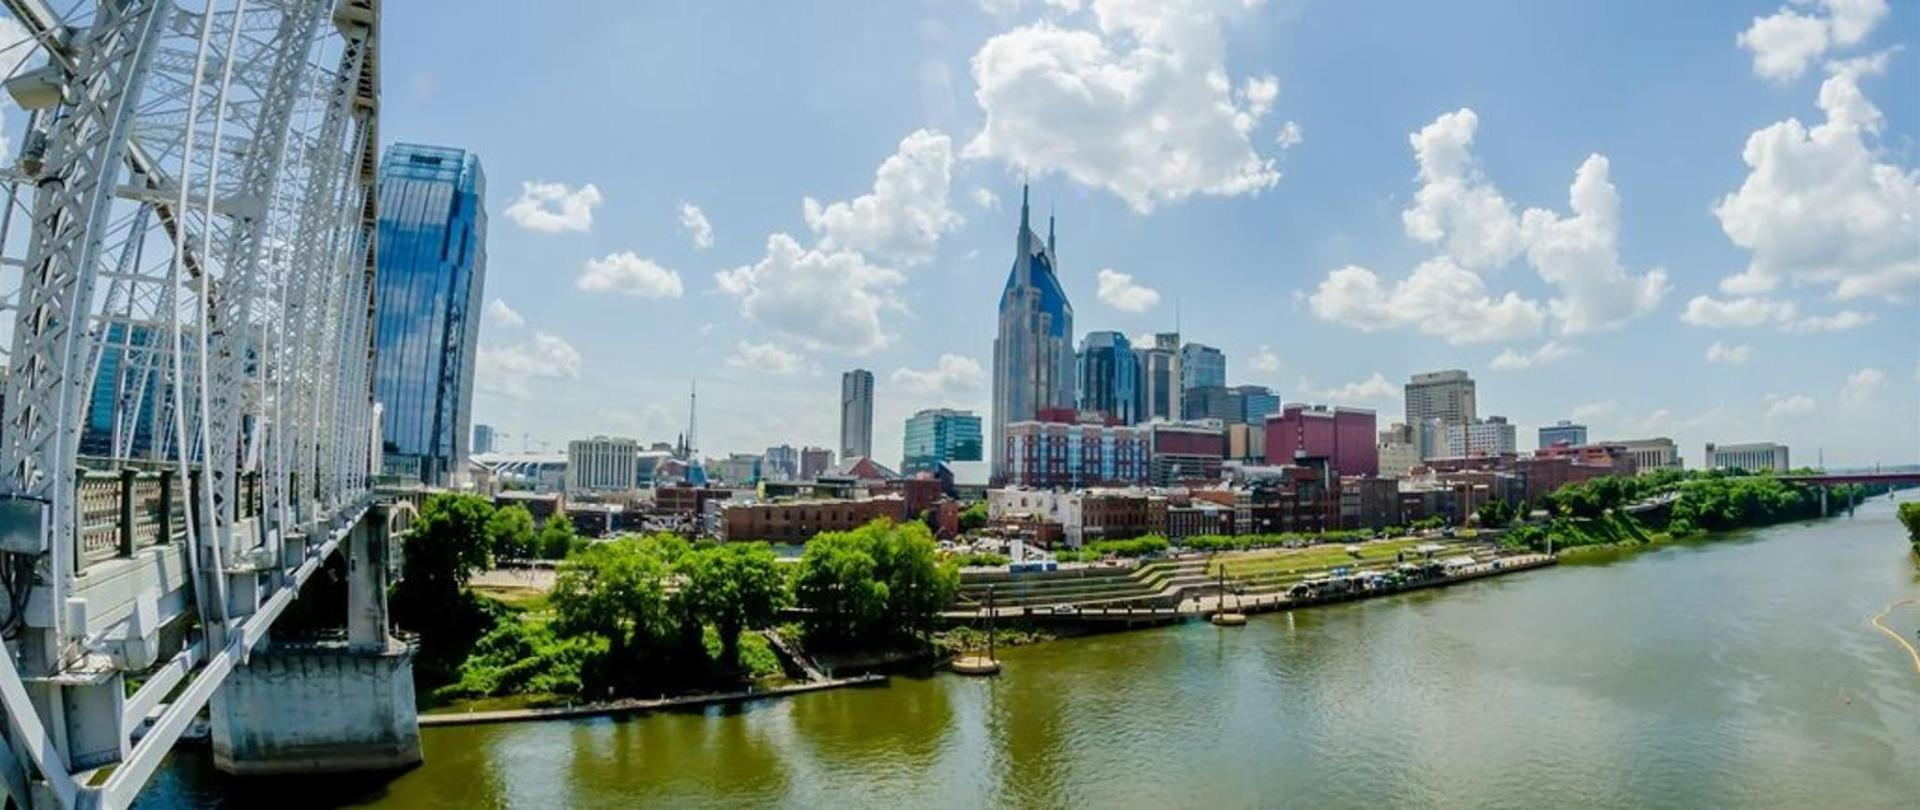 City view of Nashville Riverfront